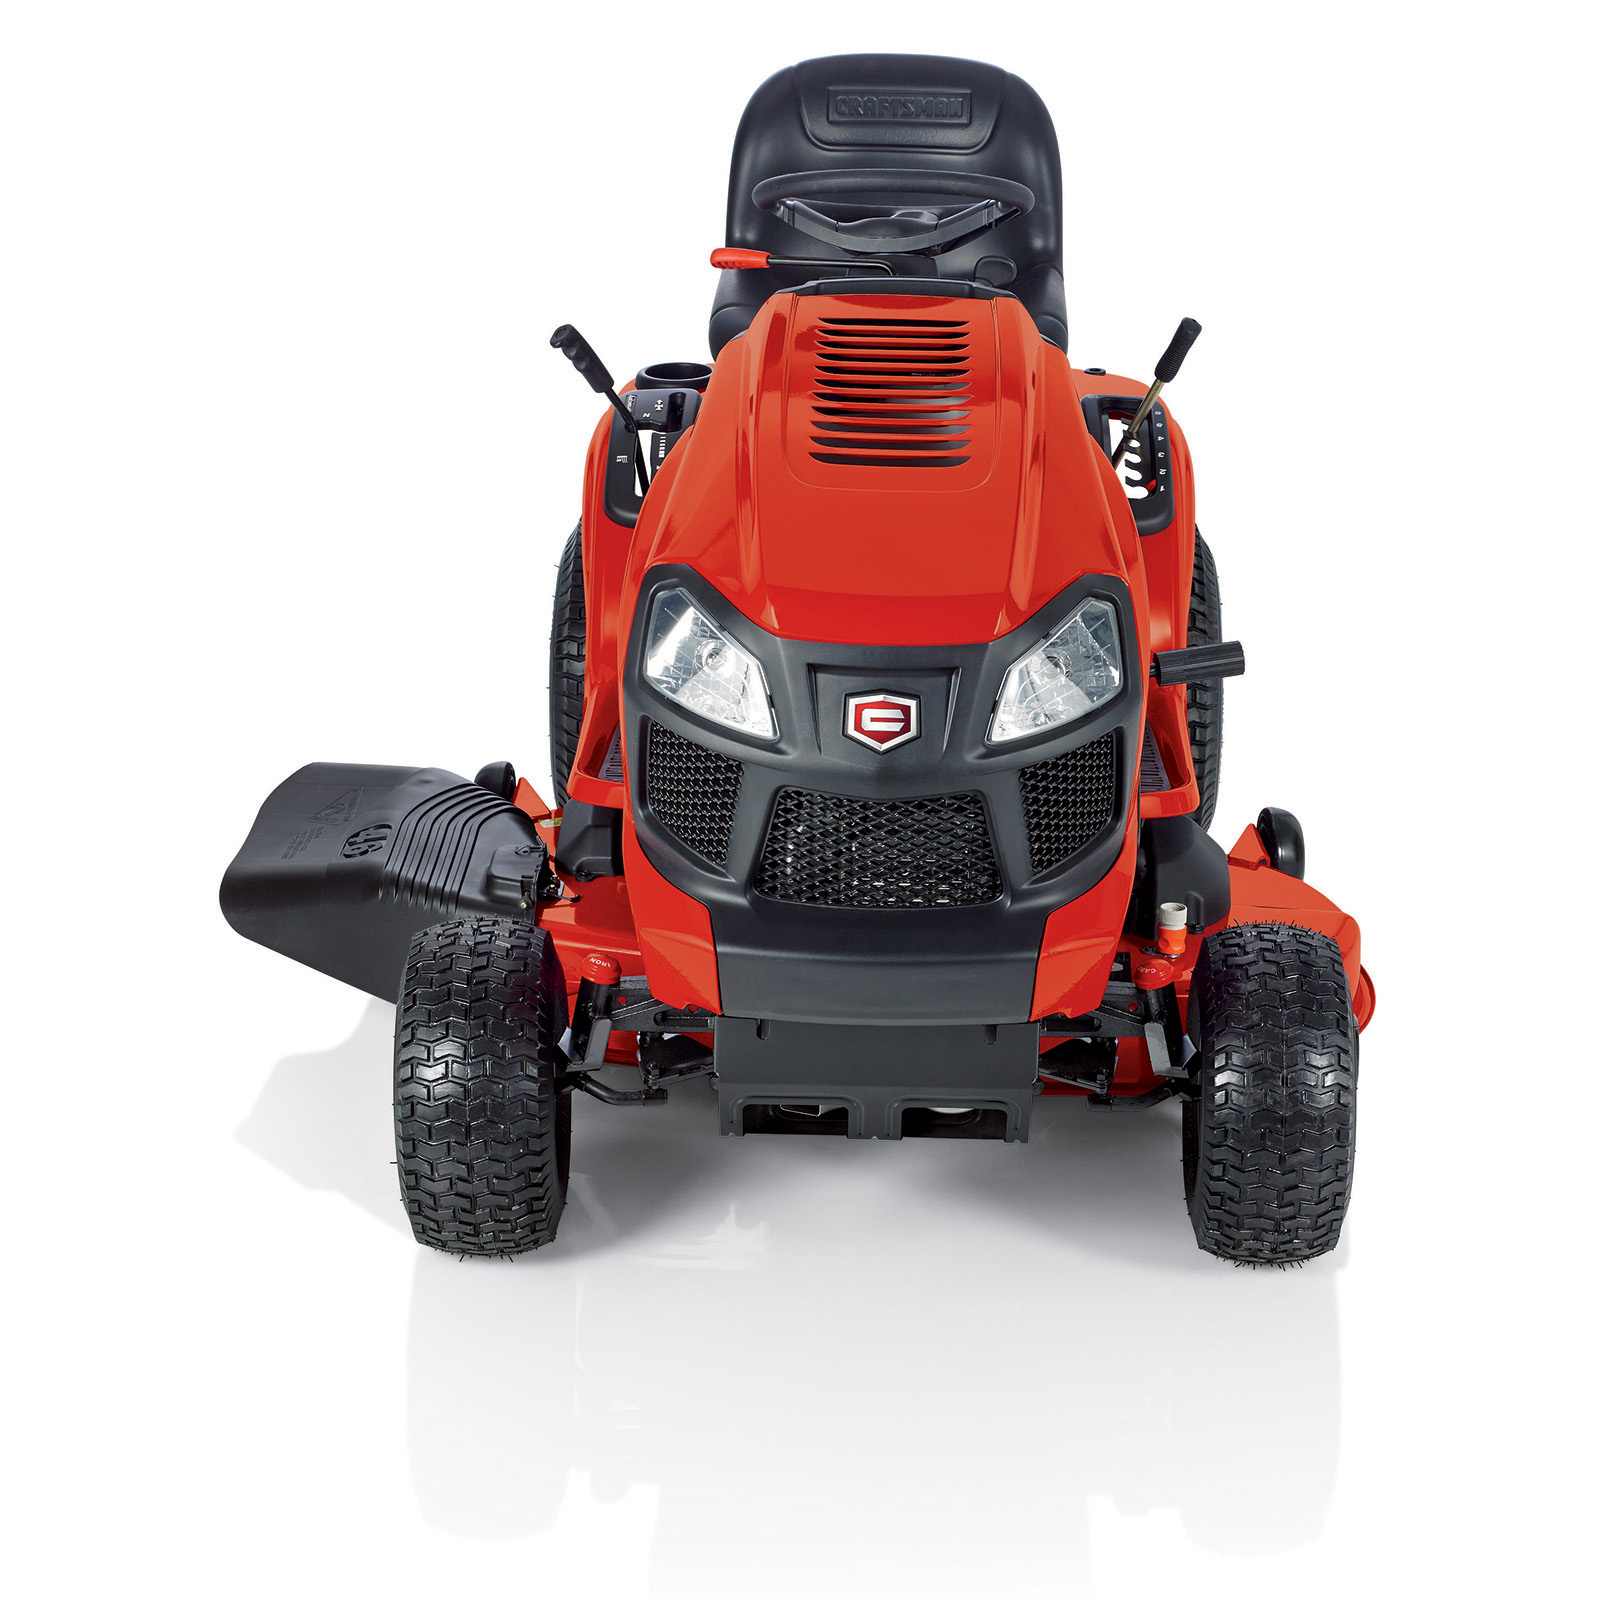 Craftsman 19HP 46 in. Turn Tight® Automatic Riding Mower